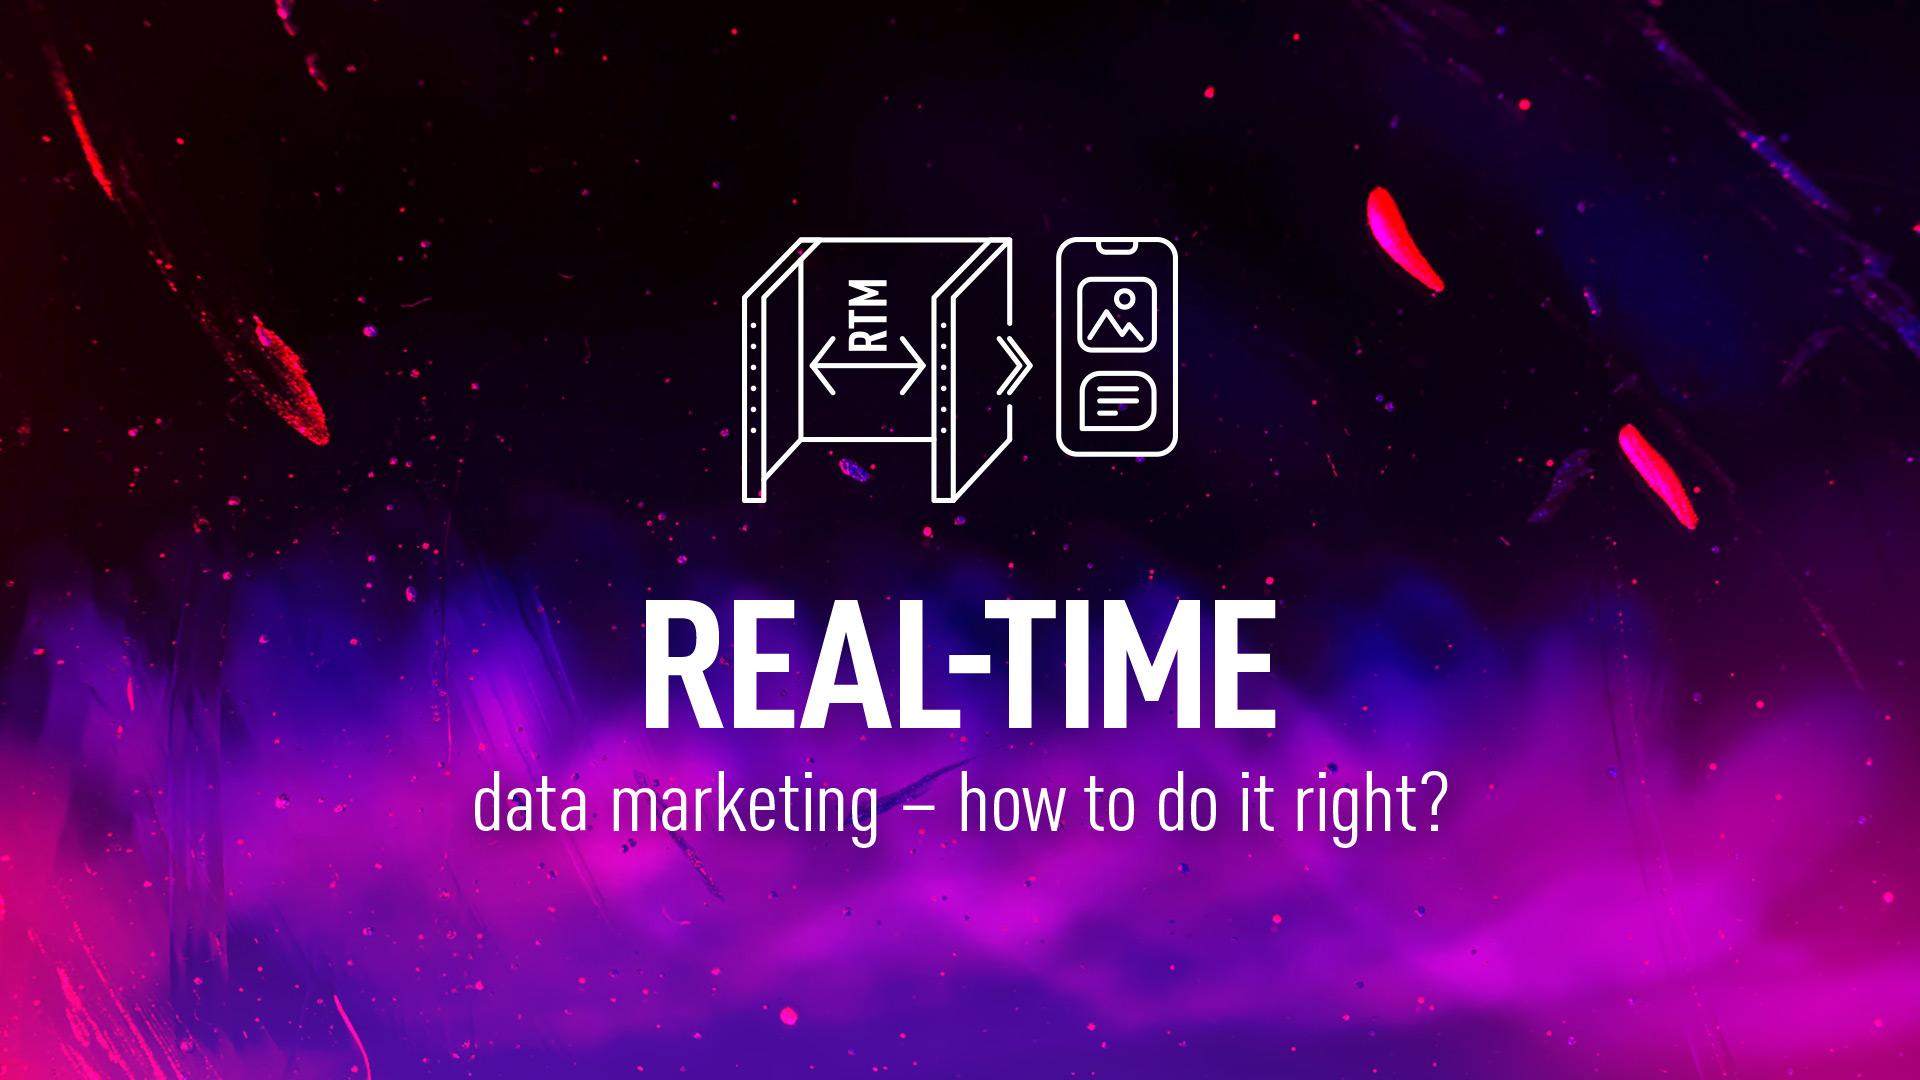 Real-time data marketing